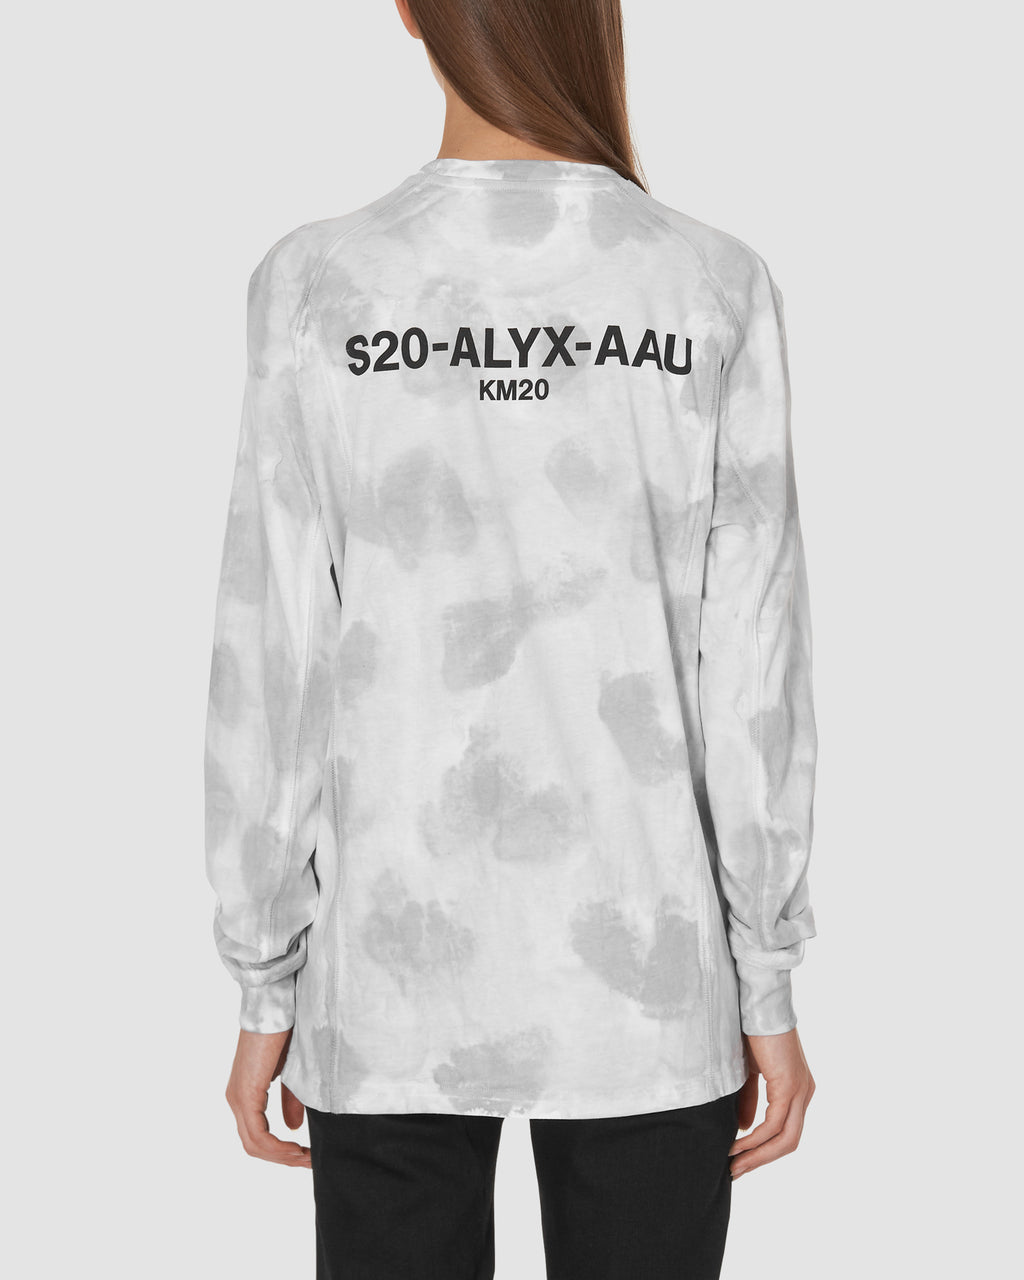 1017 ALYX 9SM | KM20 EXCLUSIVE LS TEE W ZIP | T-Shirt | CAMO GREY, Google Shopping, KM20, Man, MEN, S20, T-Shirts, Woman